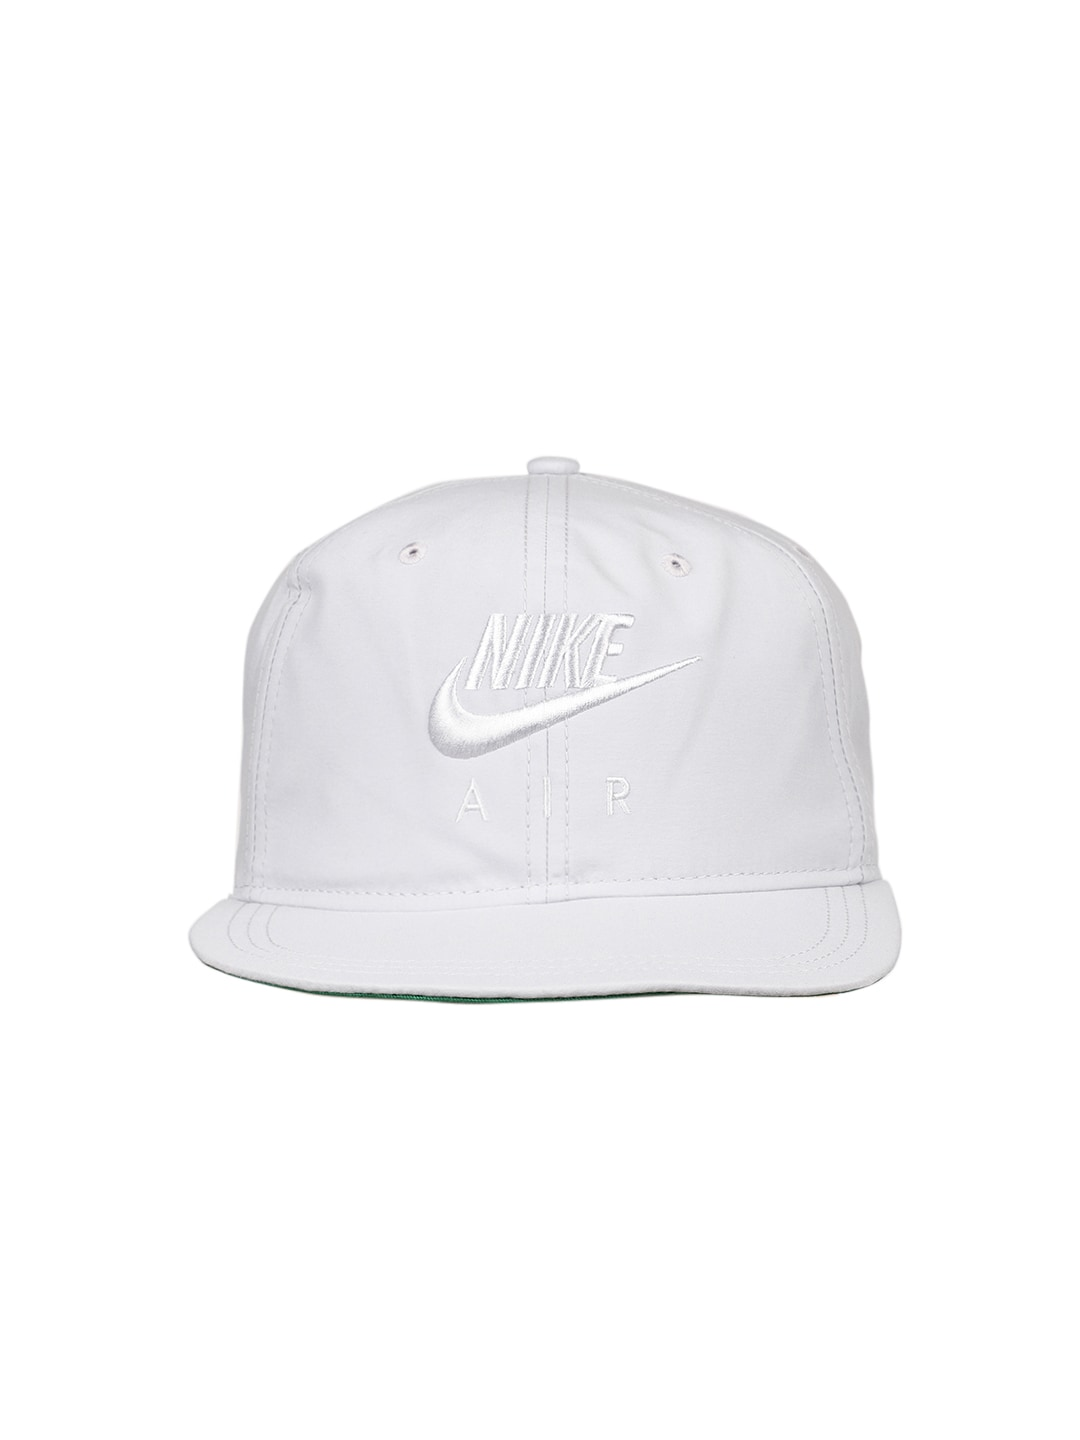 694129766df79 Nike Cap - Buy Nike Caps for Men   Women Online in India